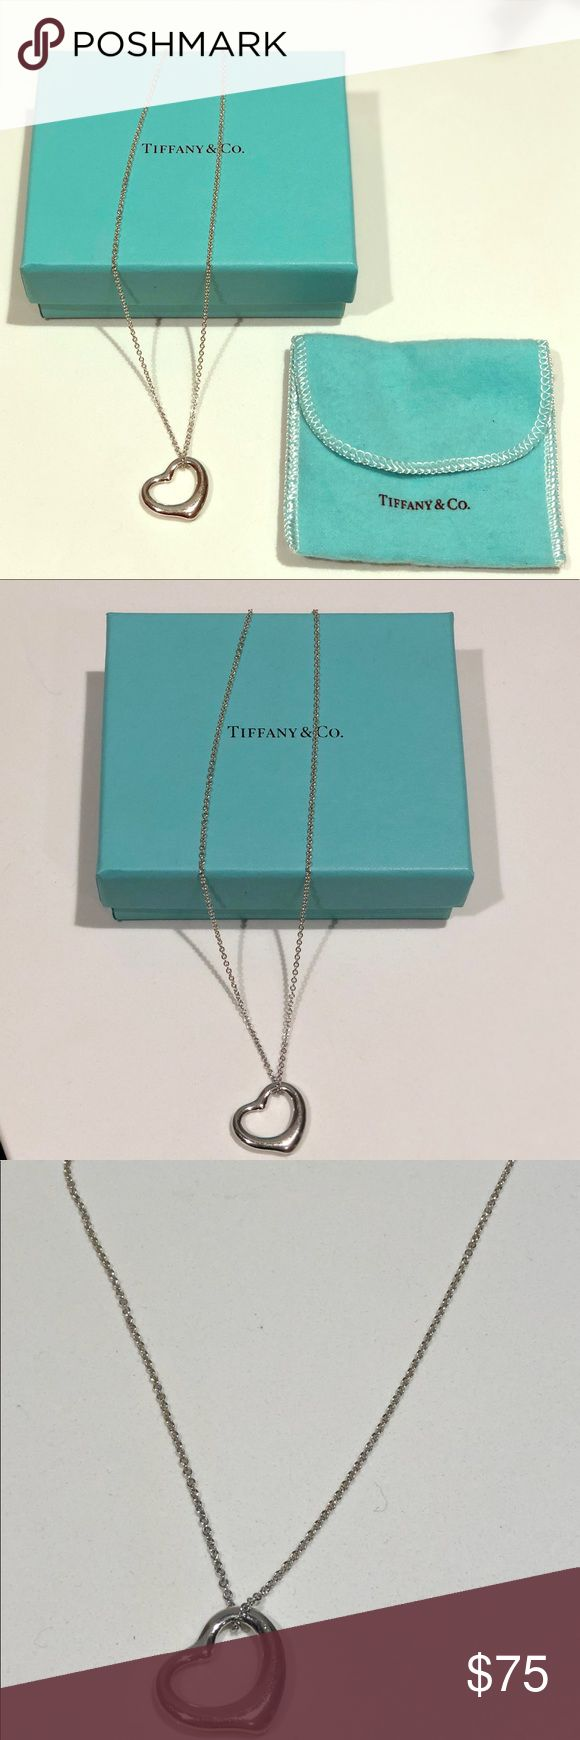 Tiffany heart necklace Classic silver tiffany heart necklace on 18 inch chain. Tiffany & Co. Jewelry Necklaces